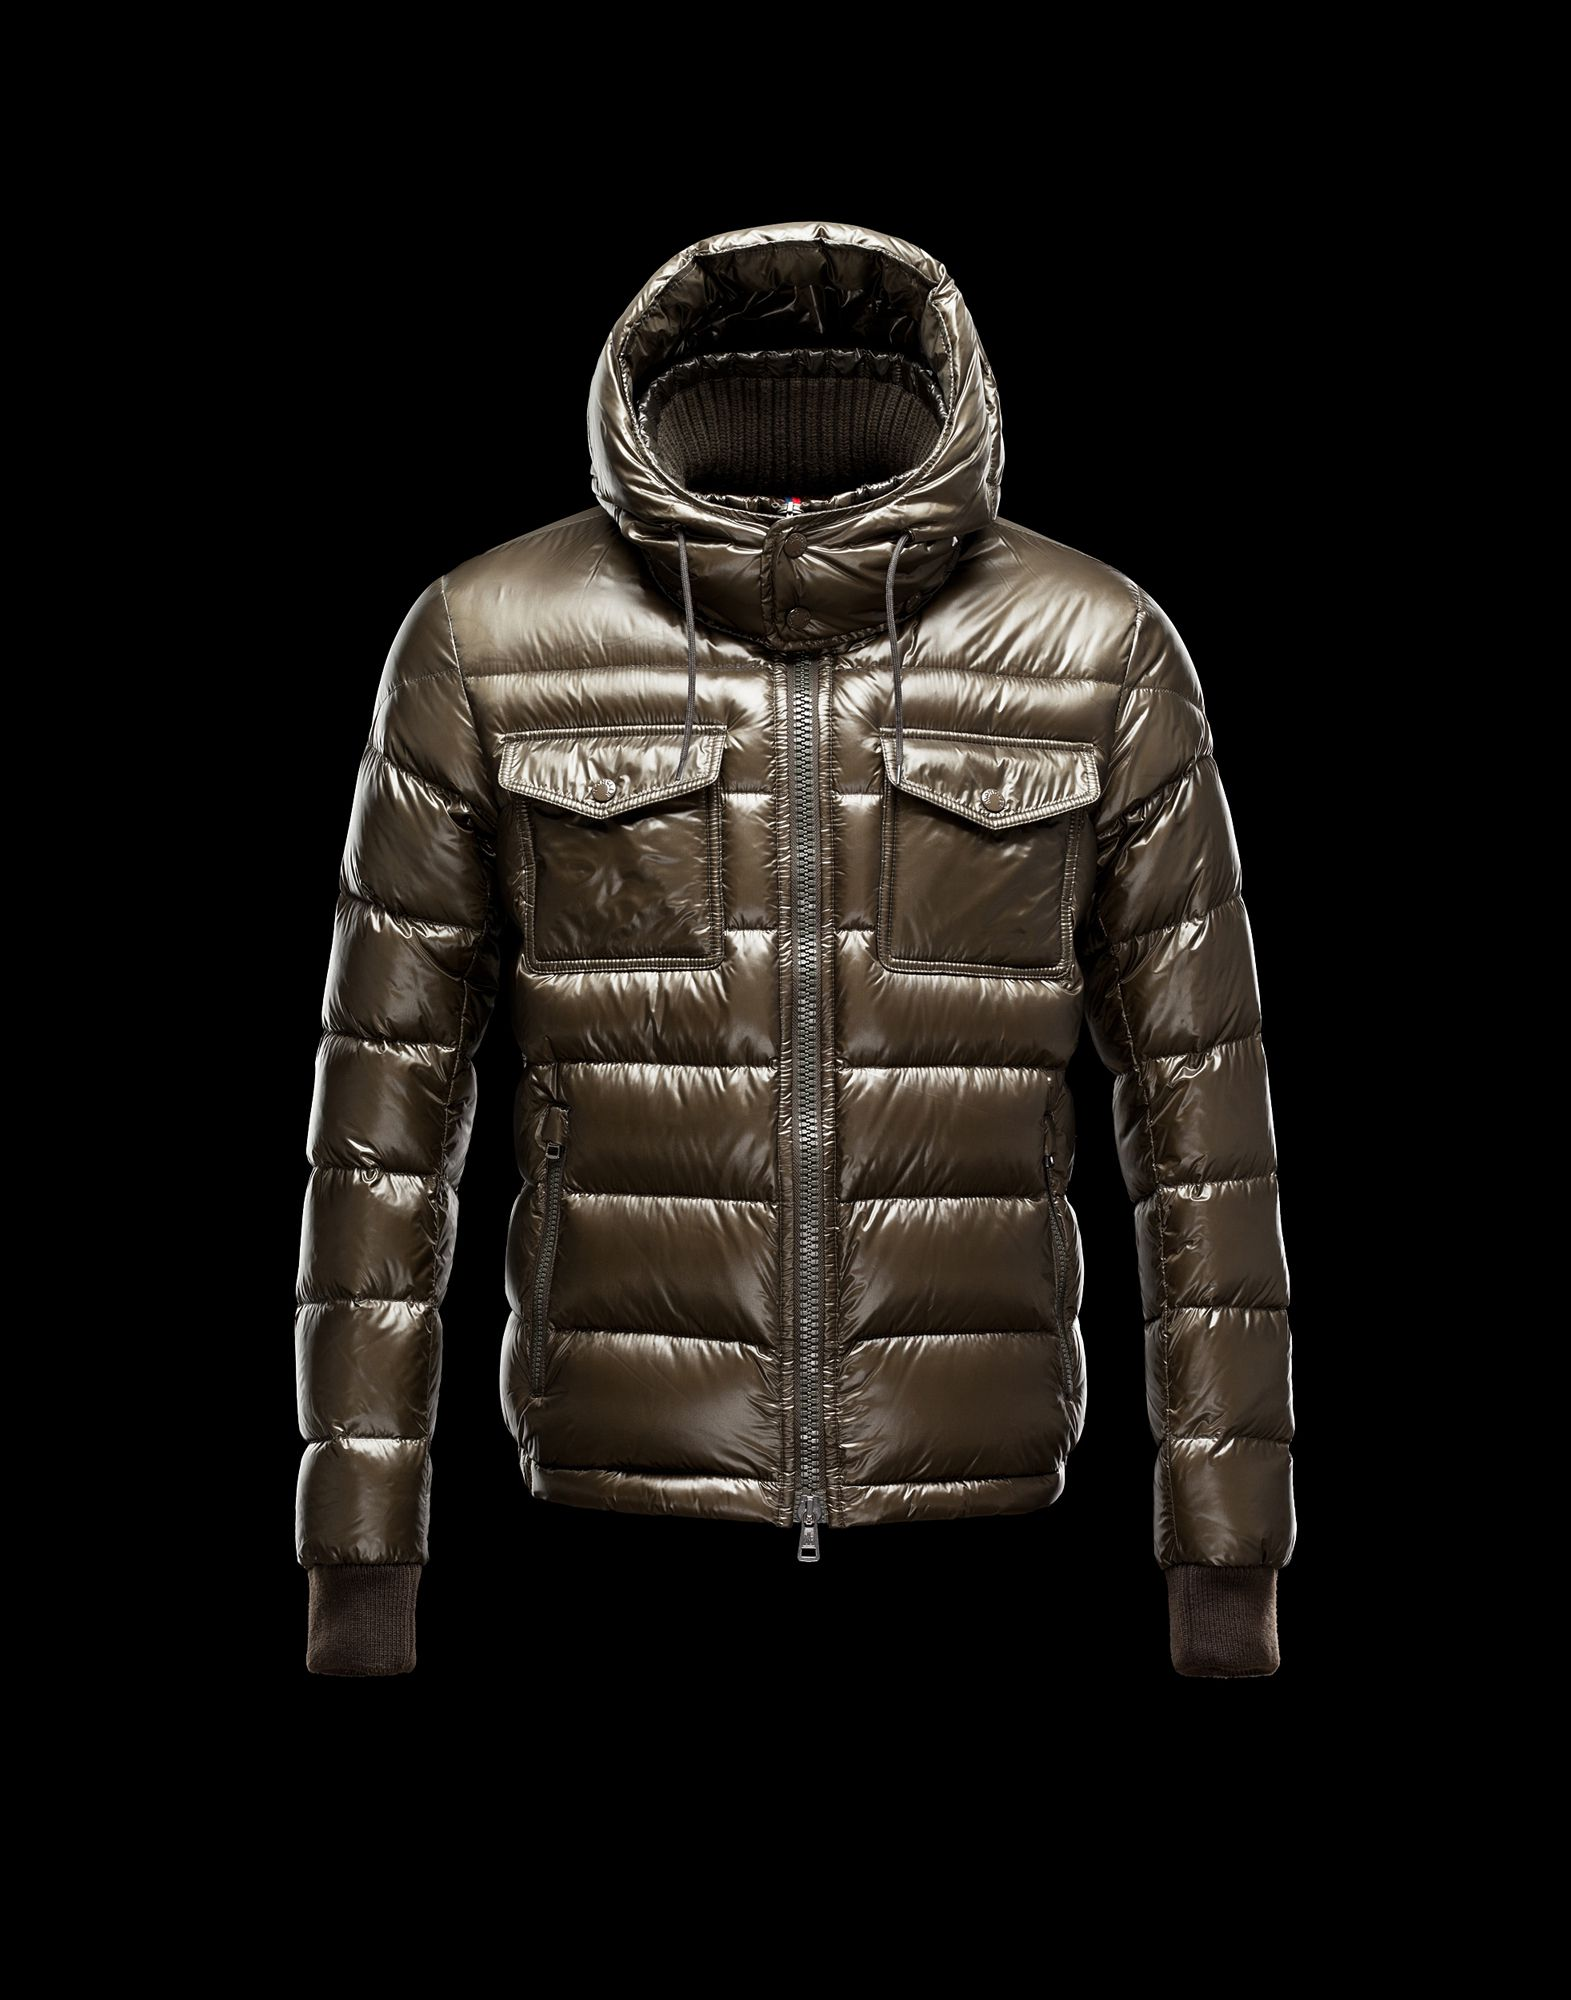 Moncler FEDOR Featured Down Jackets Mens Army Green